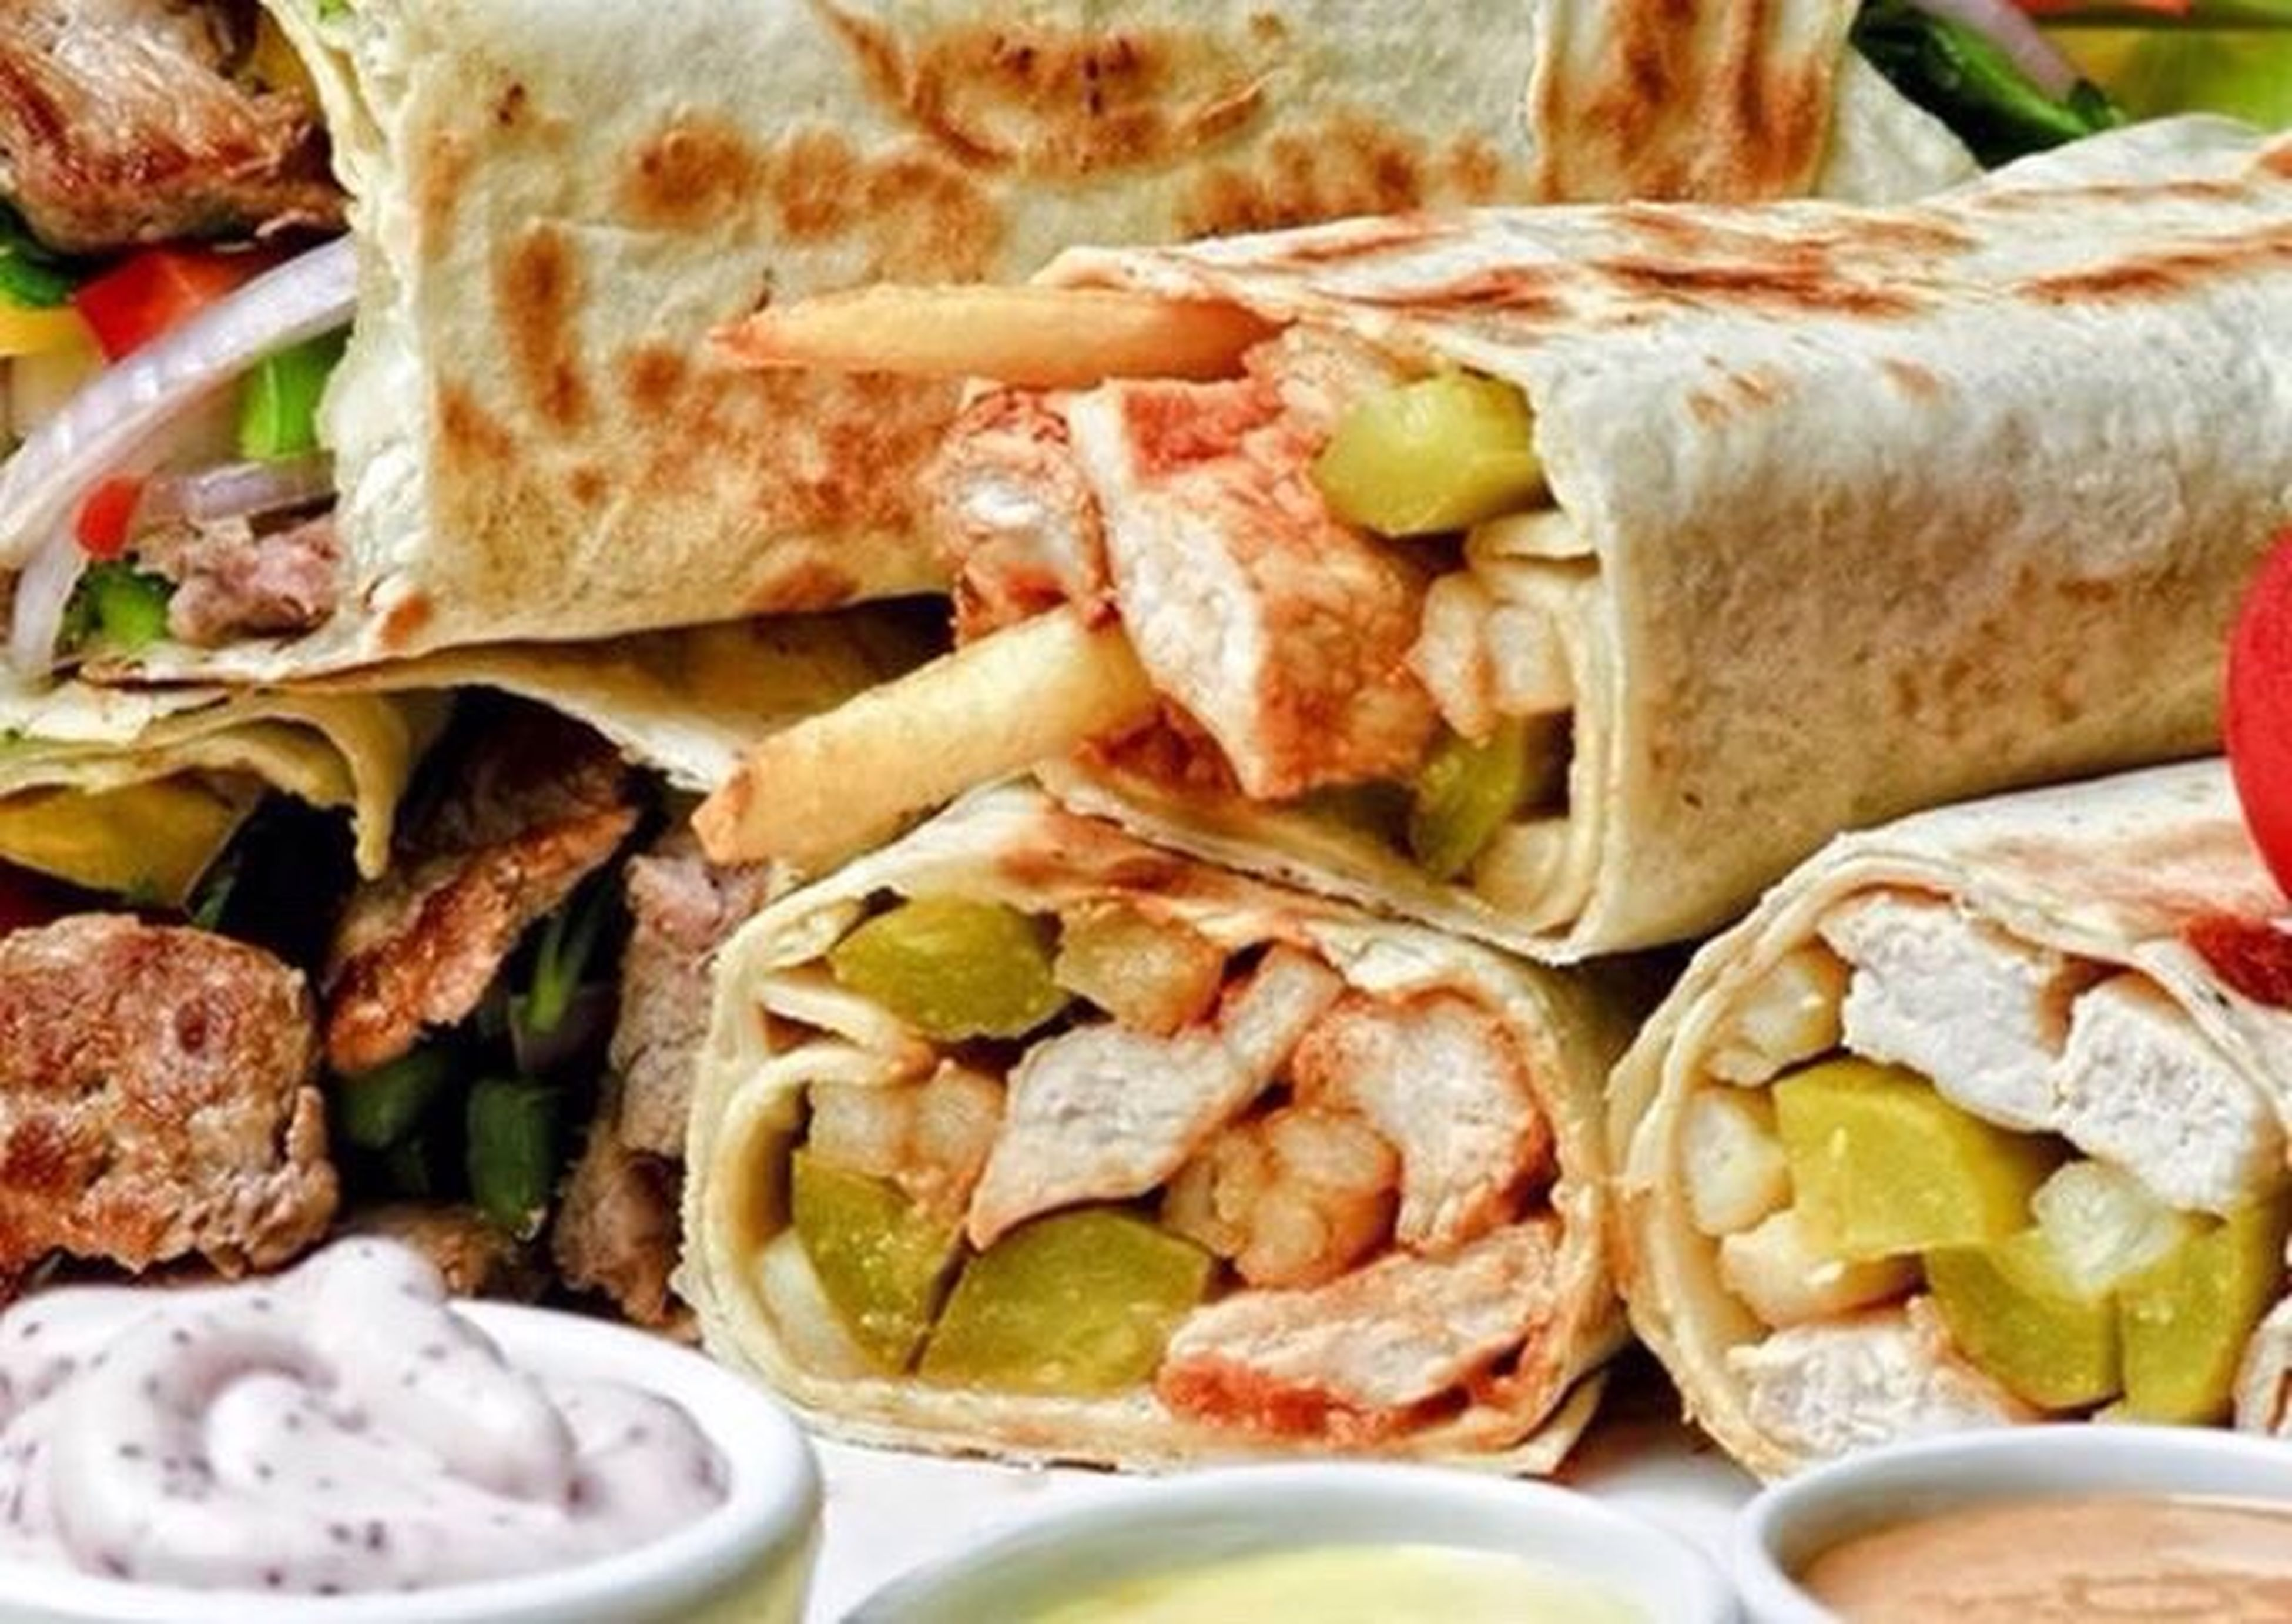 food and drink, food, mexican food, tortilla - flatbread, no people, wrap sandwich, ready-to-eat, sandwich, healthy eating, close-up, pita bread, freshness